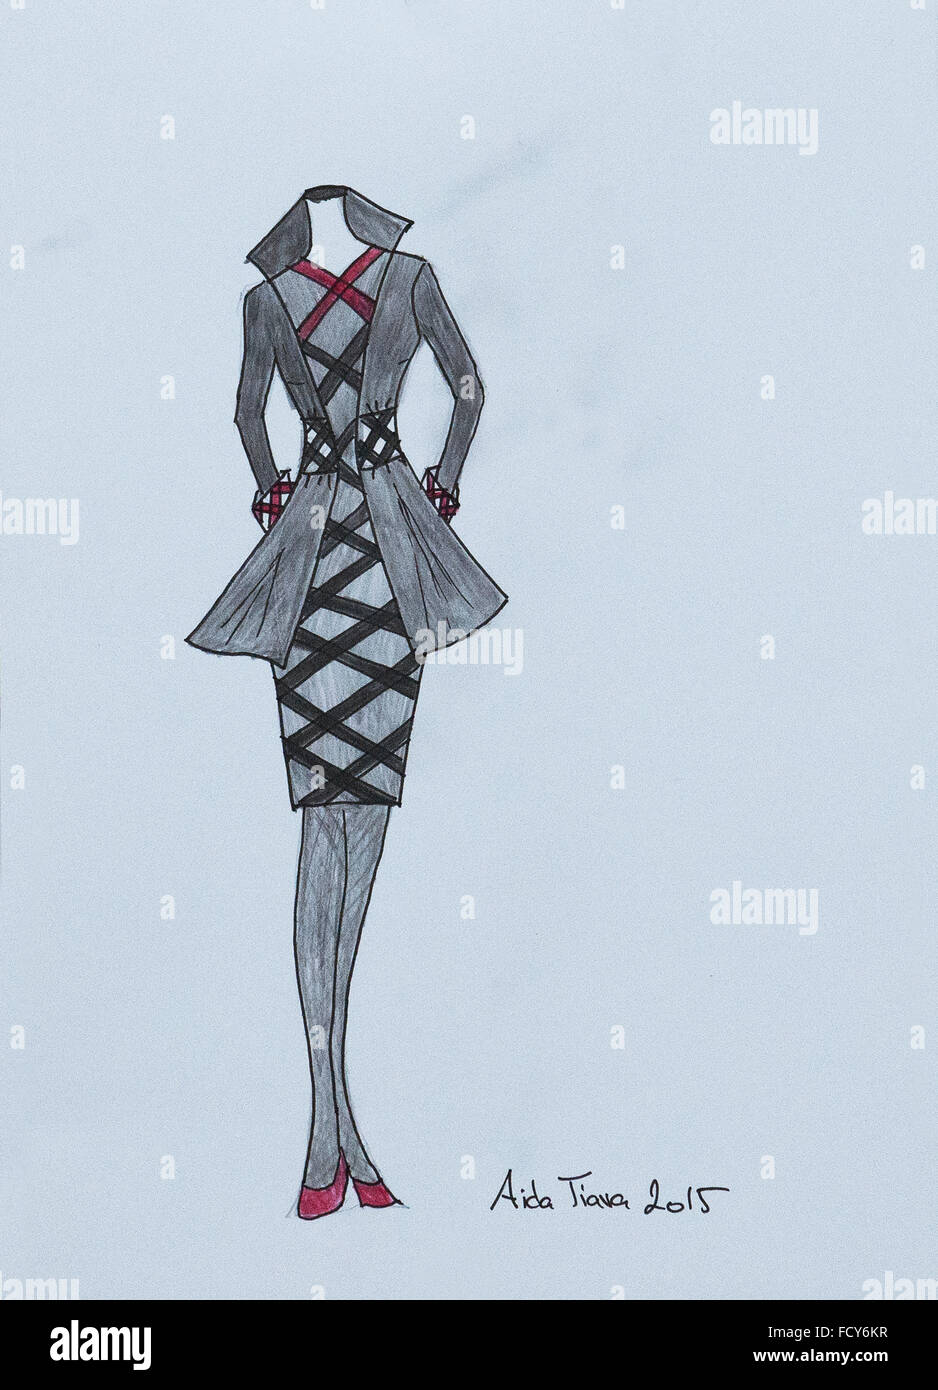 Handmade Fashion Sketch Fashion Draw Of A One Piece Dress And Stock Photo Alamy